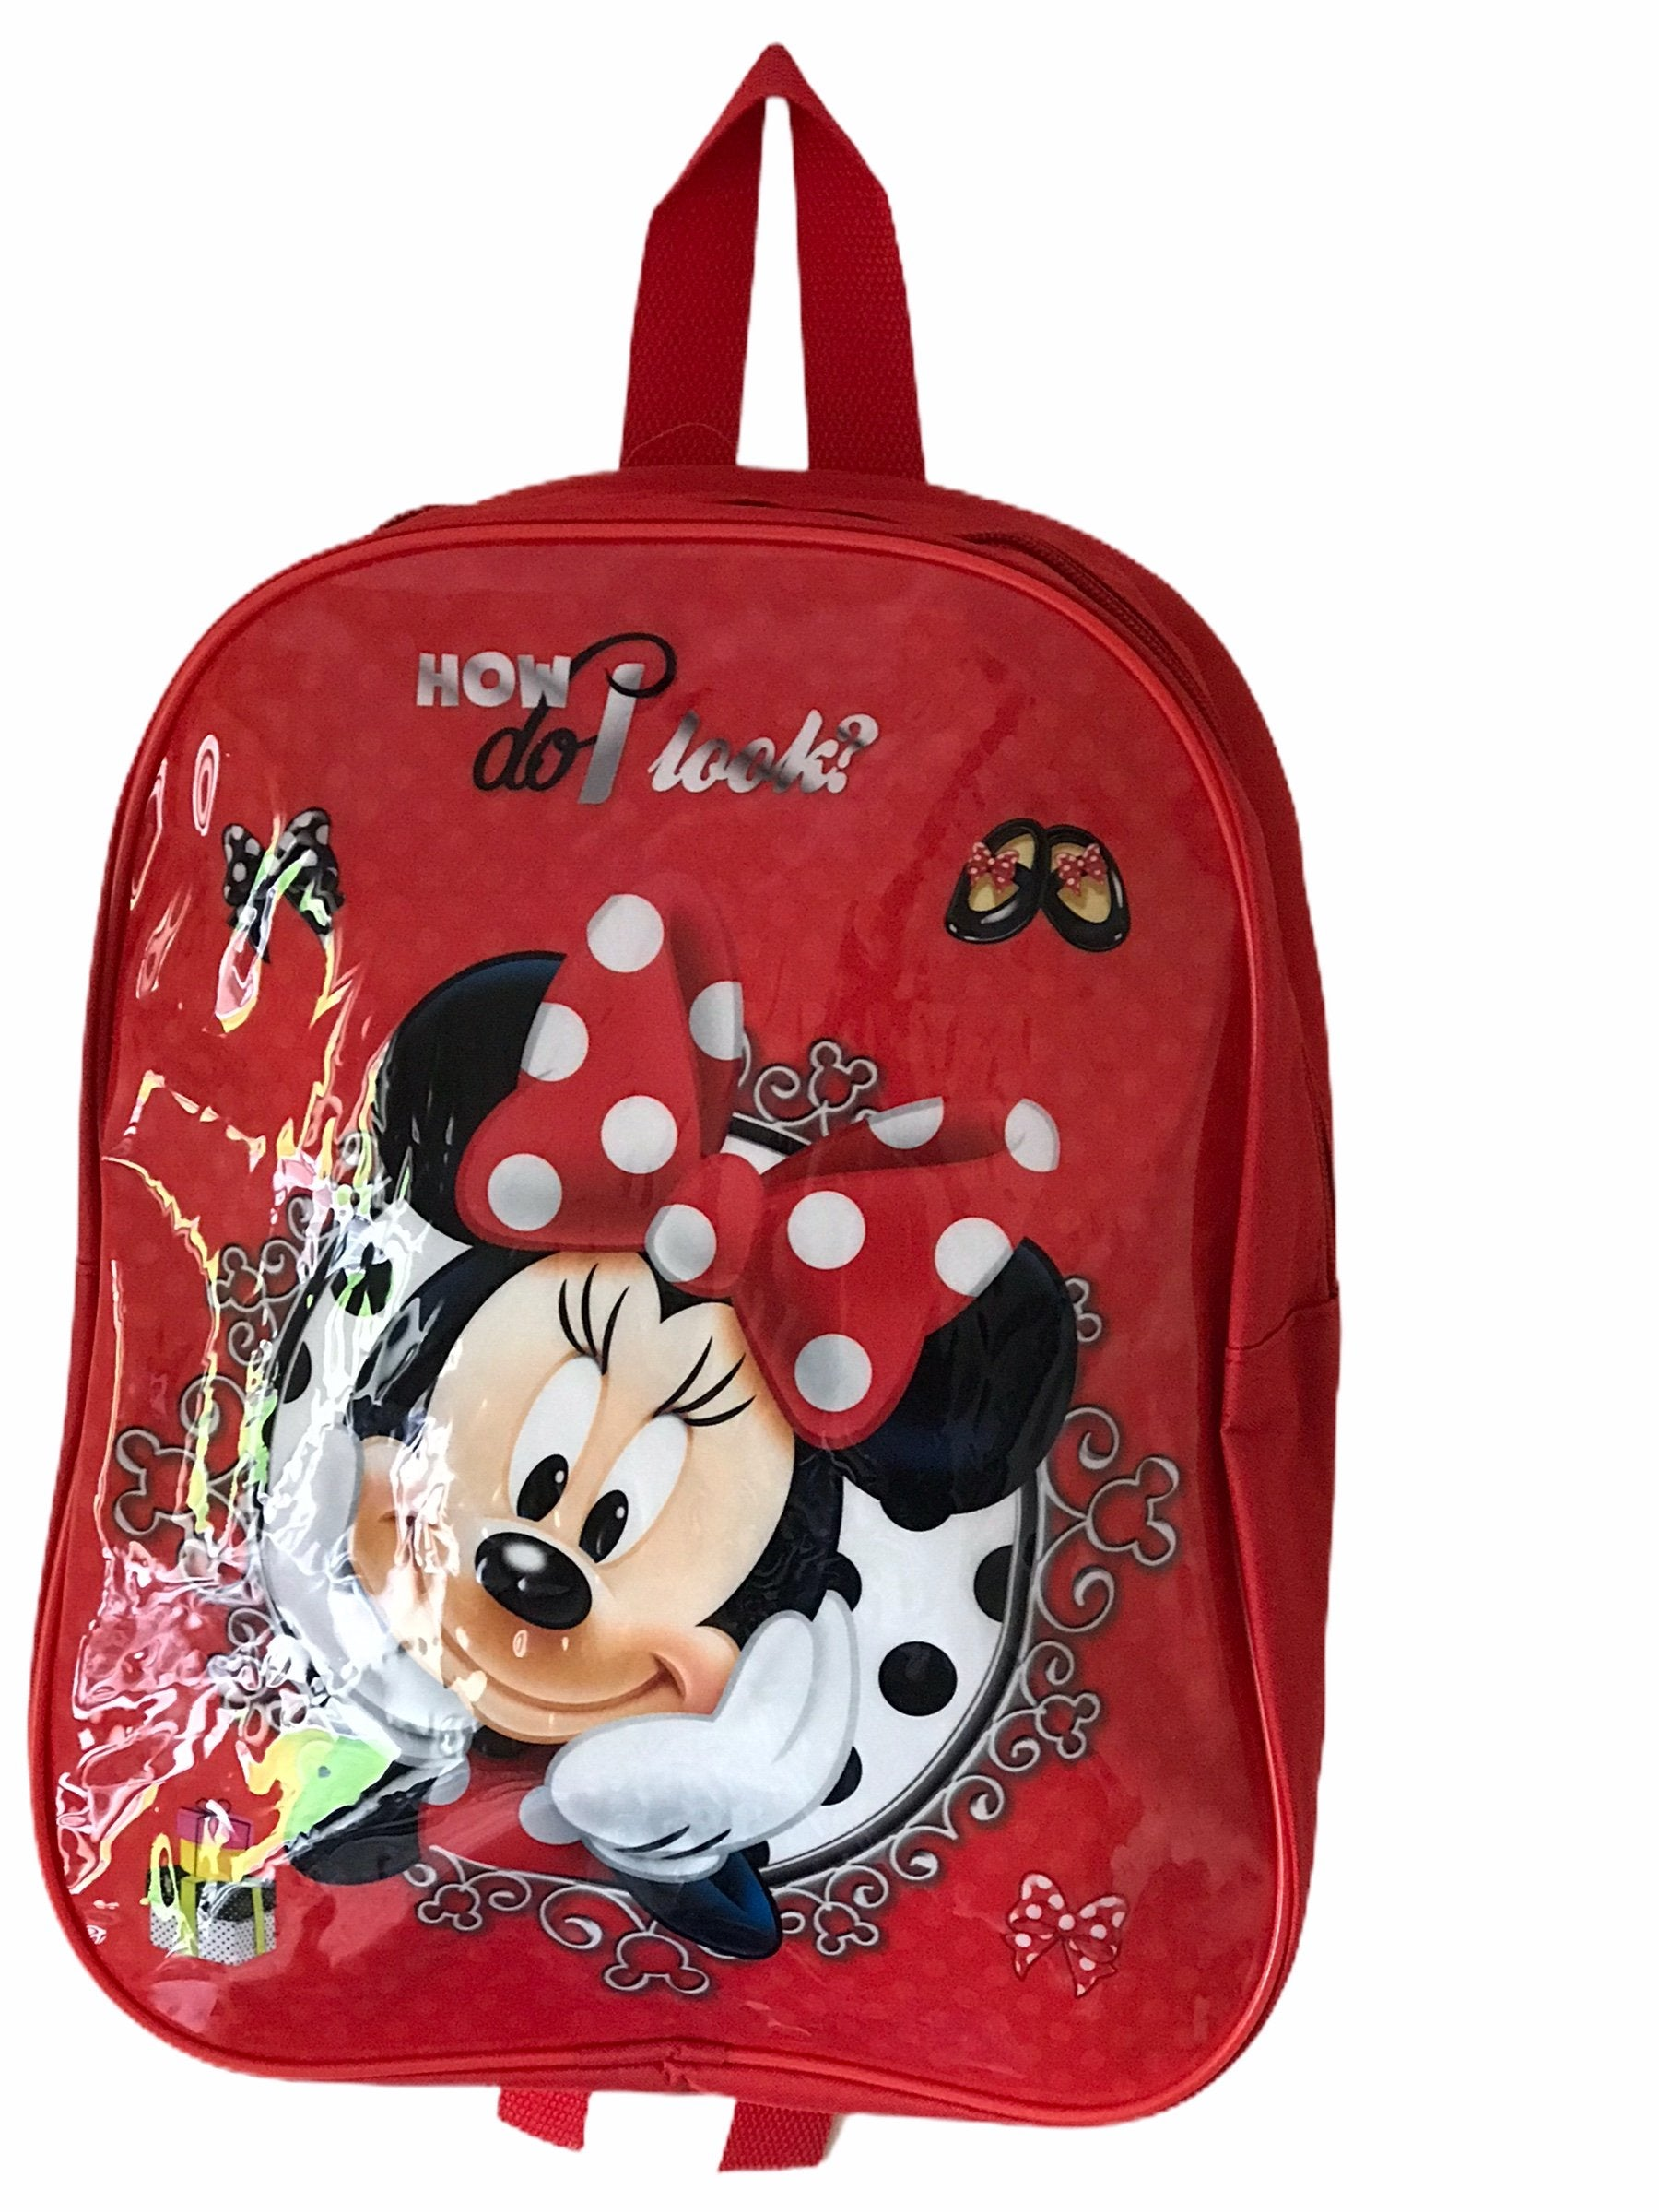 Girl Minnie Mouse Backpack Bag